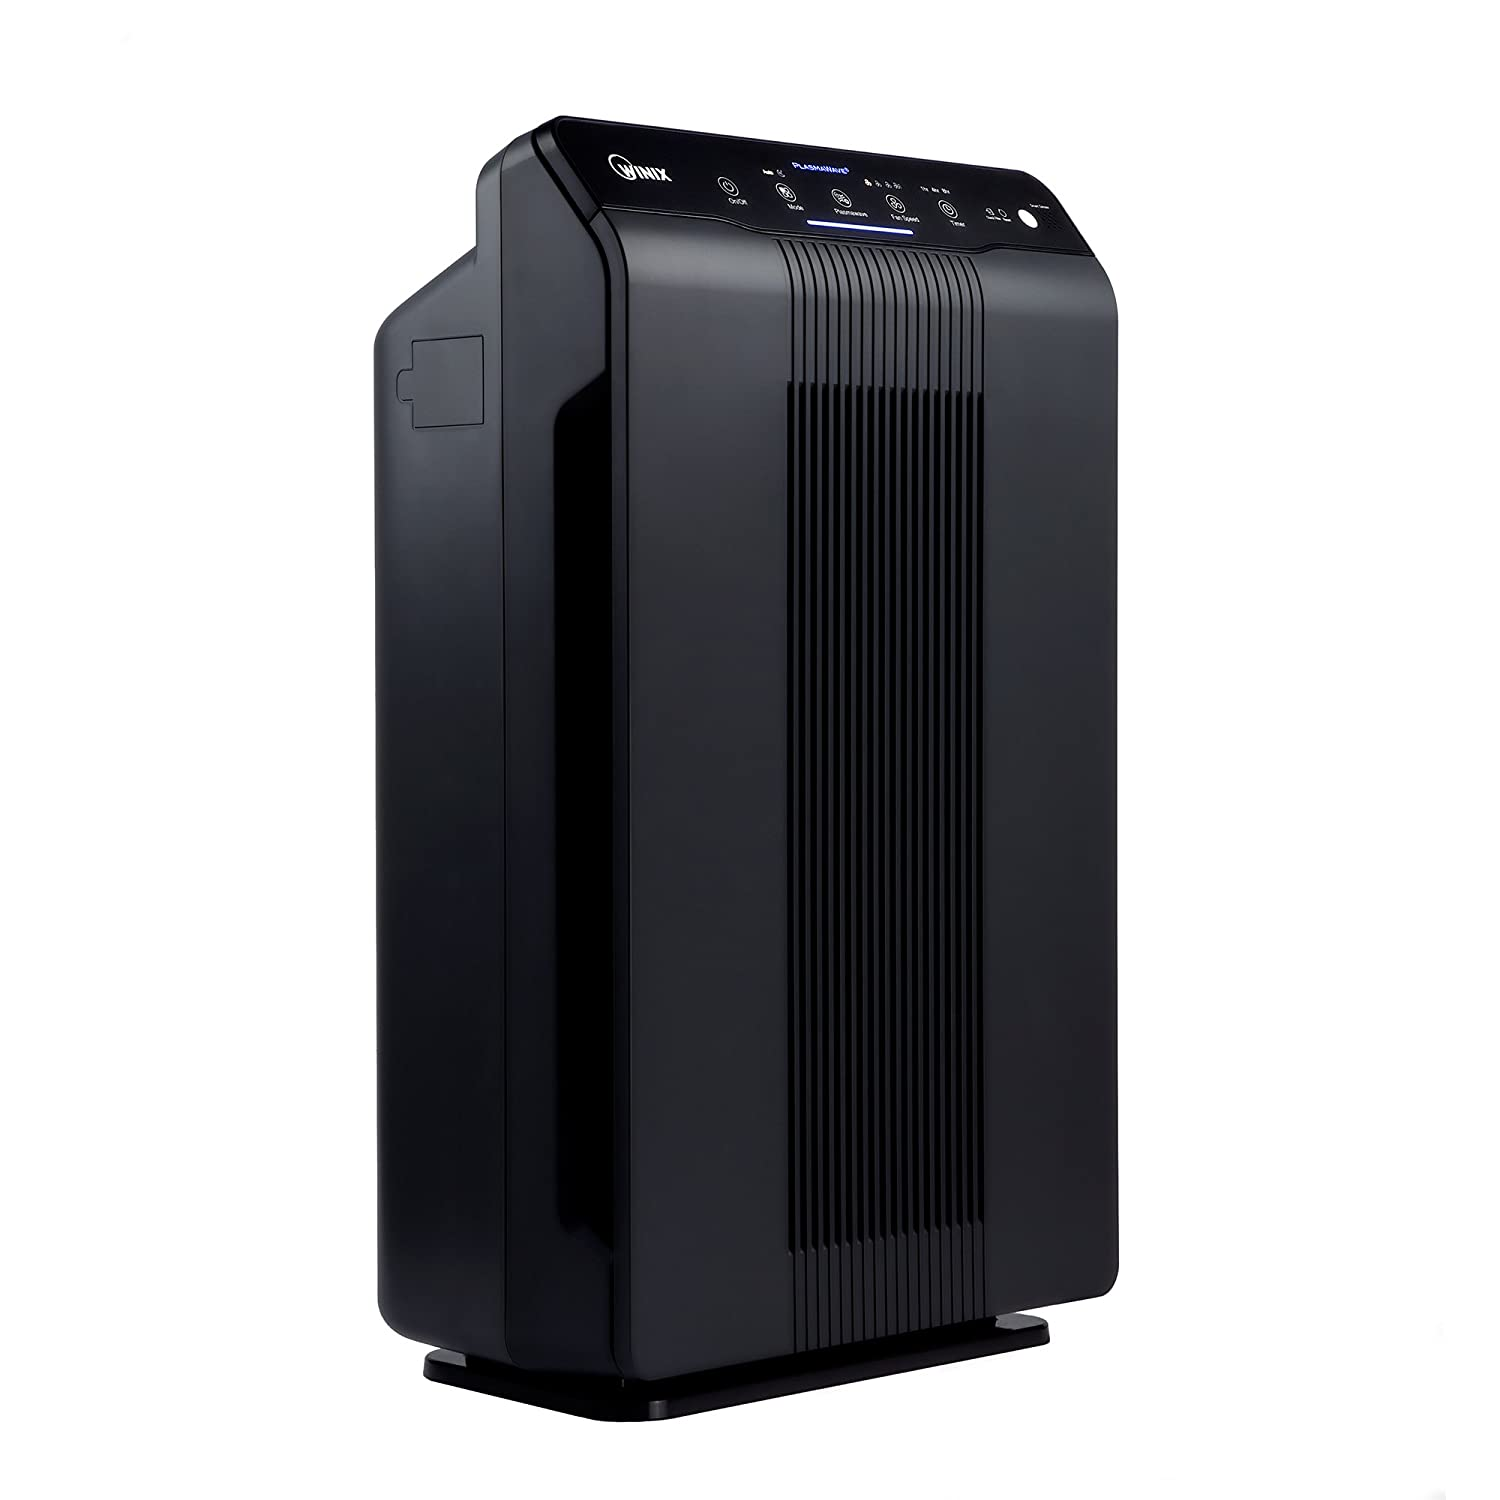 Air Purifier With Washable HEPA Filter_Winix 5500-2 Air Purifier with True HEPA, PlasmaWave and Odor Reducing Washable AOC Carbon Filter